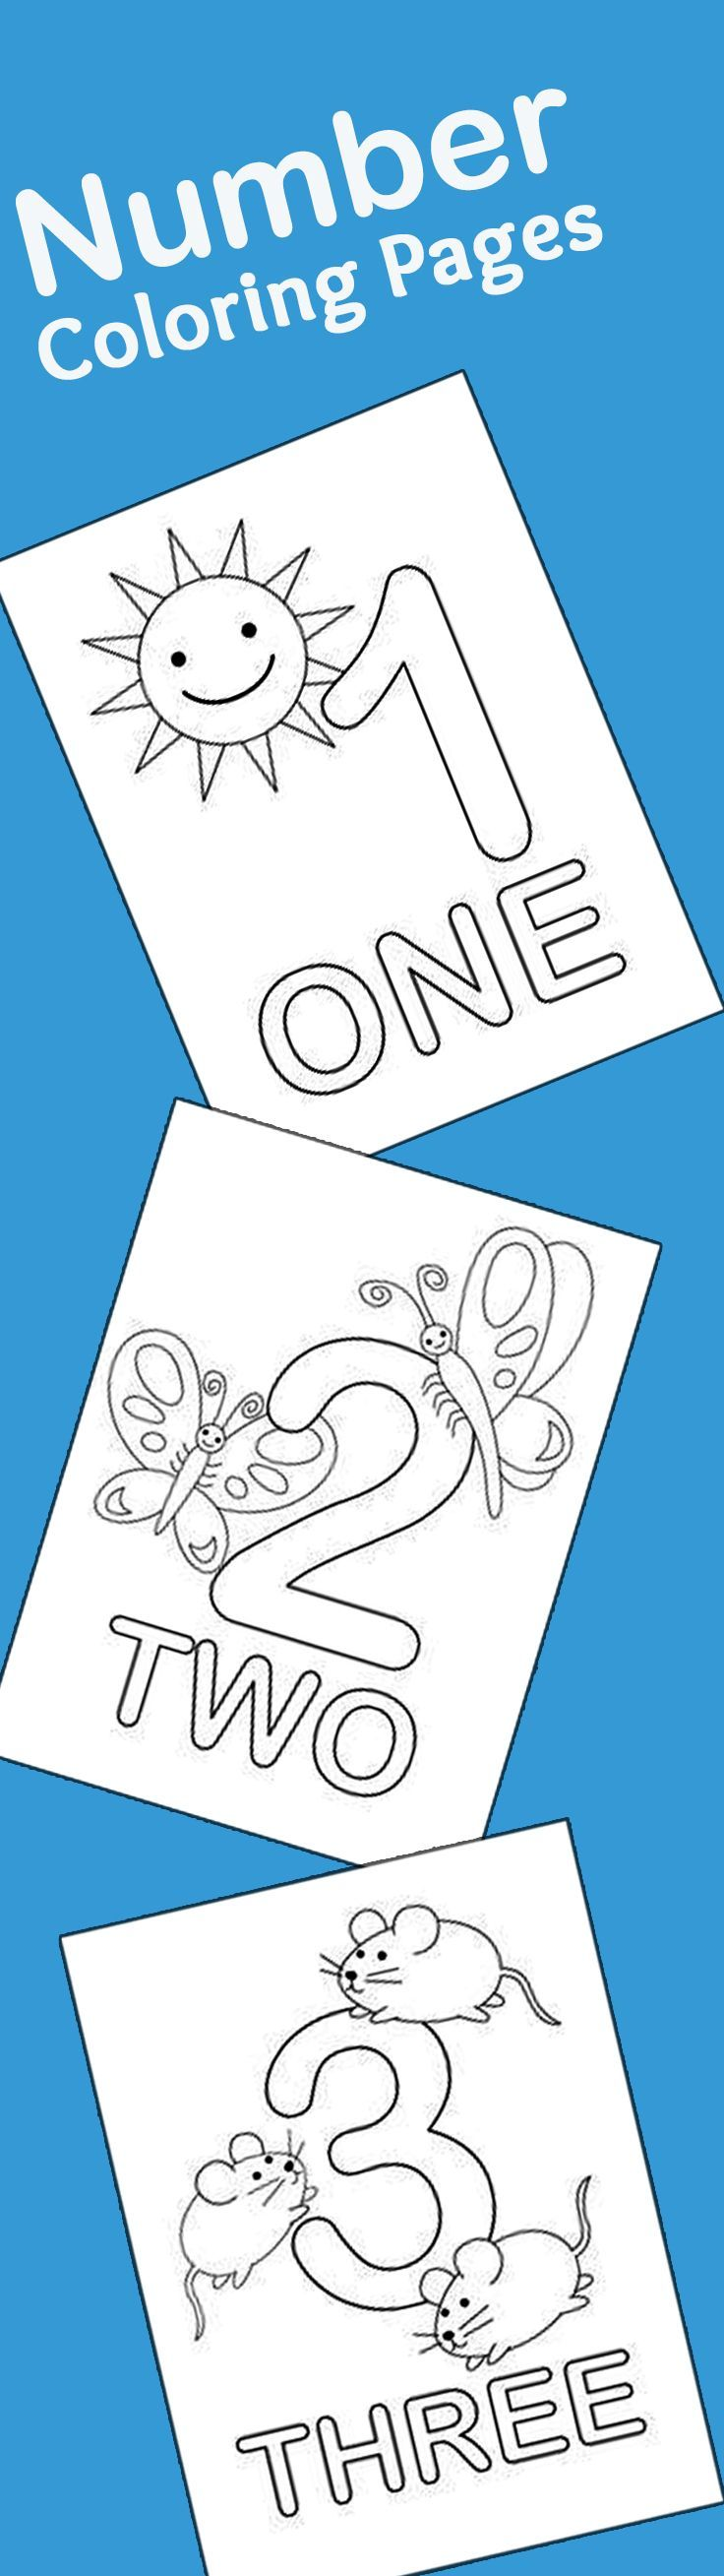 21 easy to learn number coloring pages for kids this is a list of the - Learning Pages For 5 Year Olds